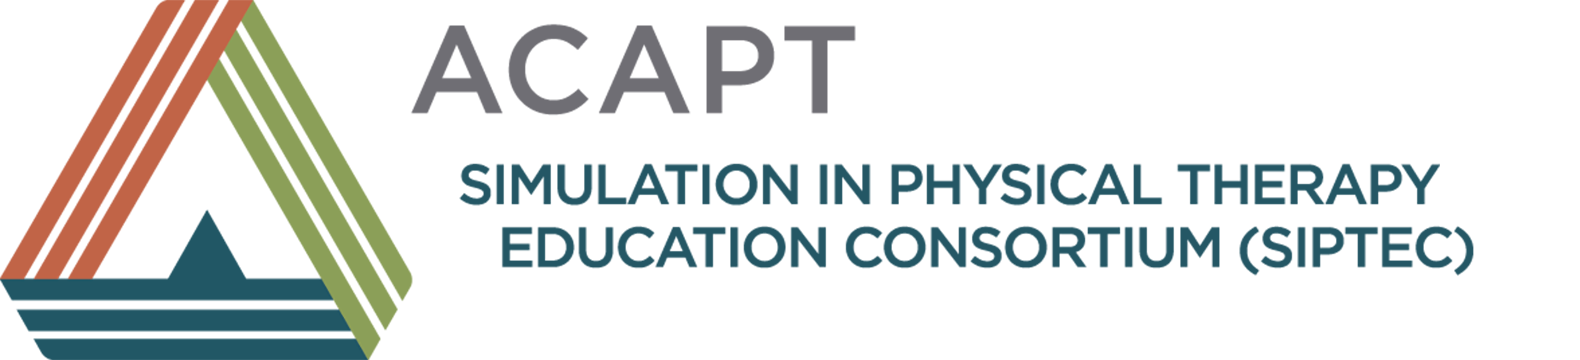 Simulation in Physical Therapy Education Consortium (SIPTEC)